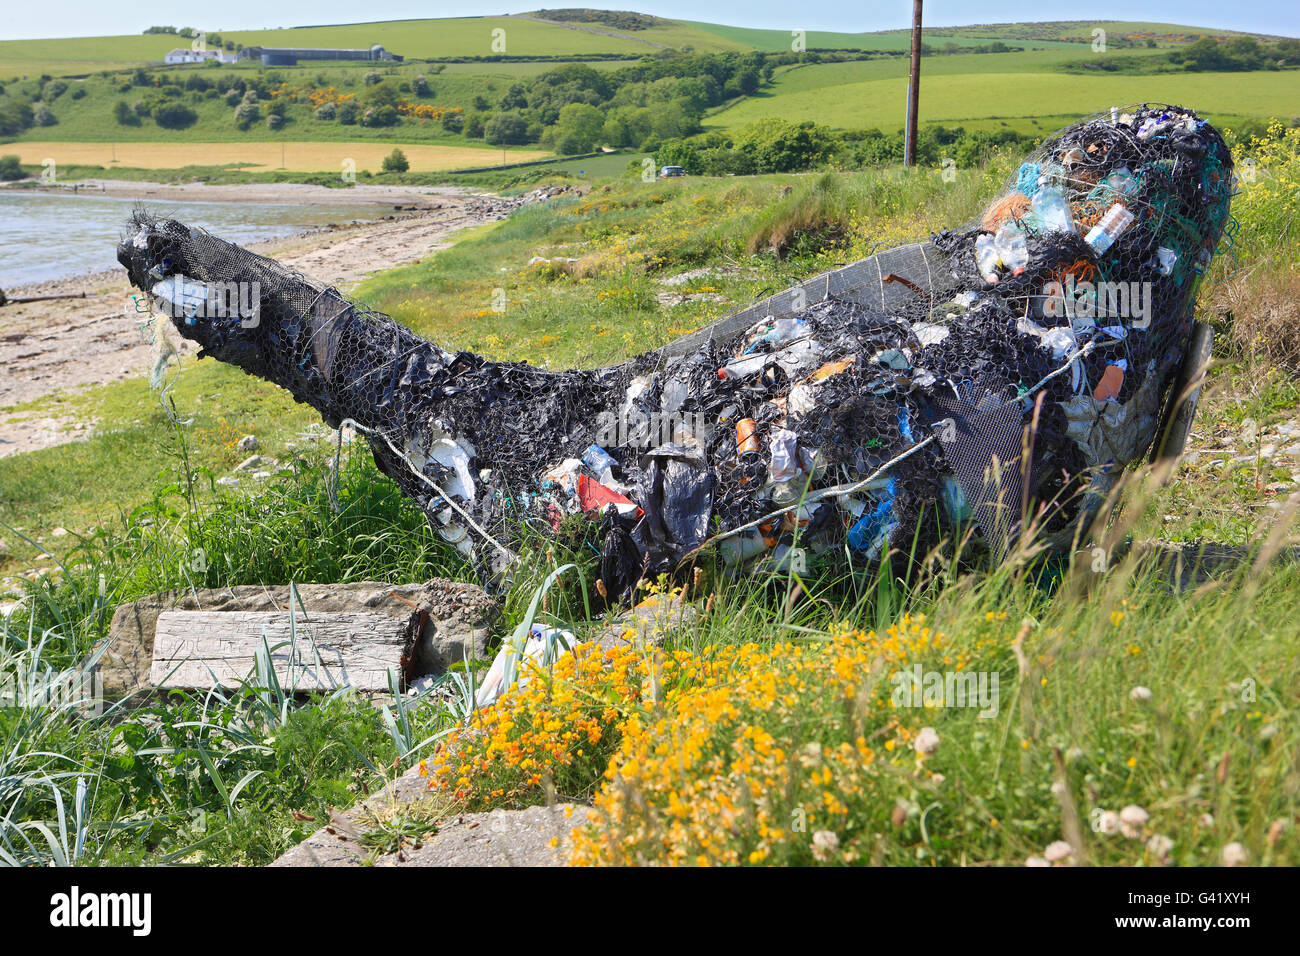 Whale art sculpture at Ettrick Bay on Isle of Bute. It's made from flotsam and jetsam materials washed up on - Stock Image